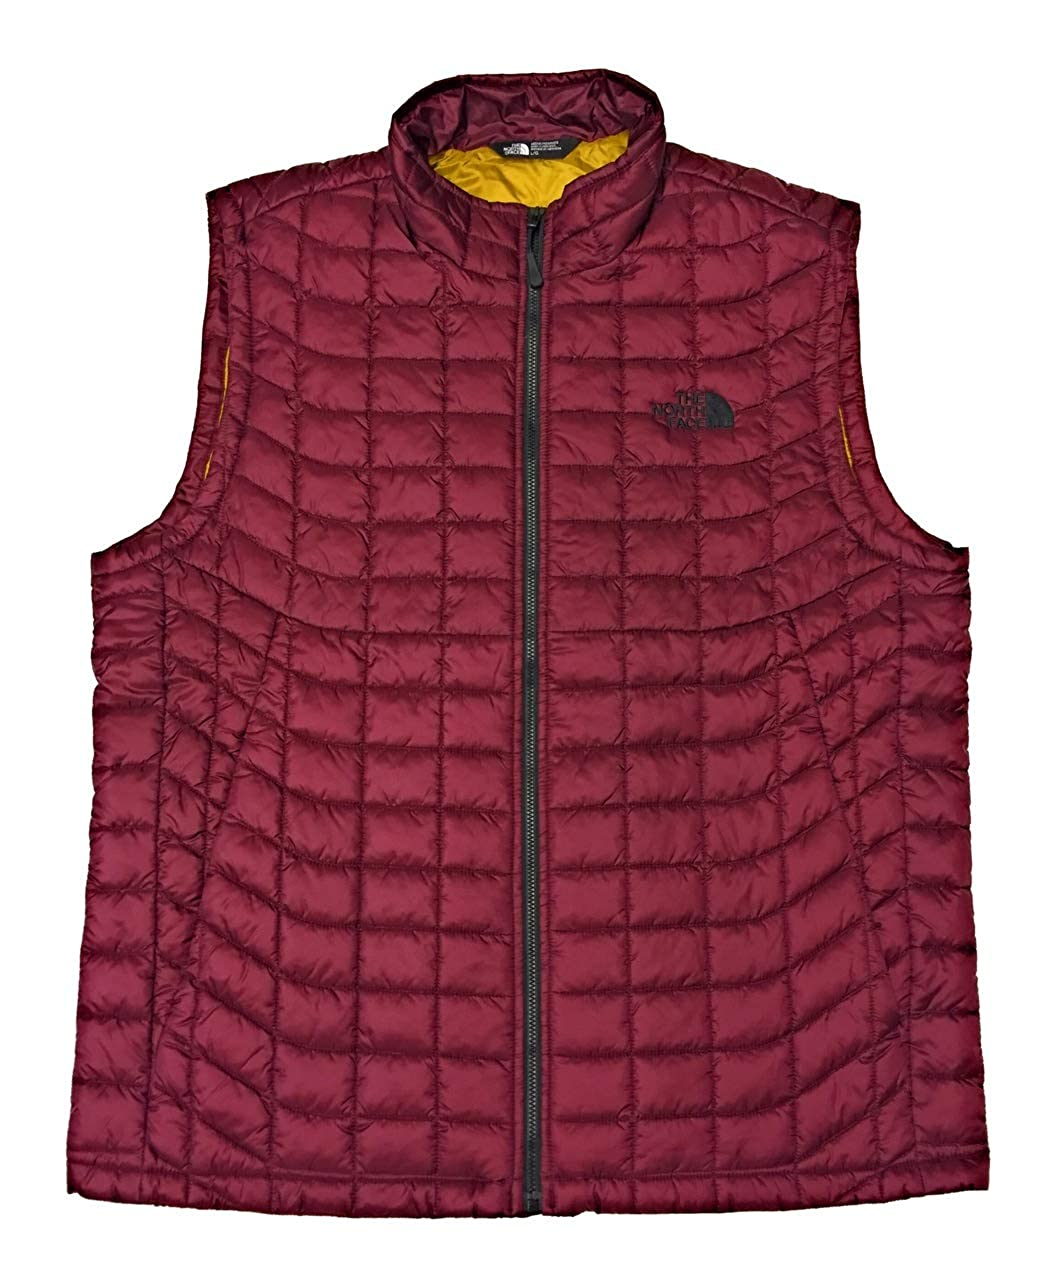 d4bbdac7f The North Face Men's Thermoball Vest